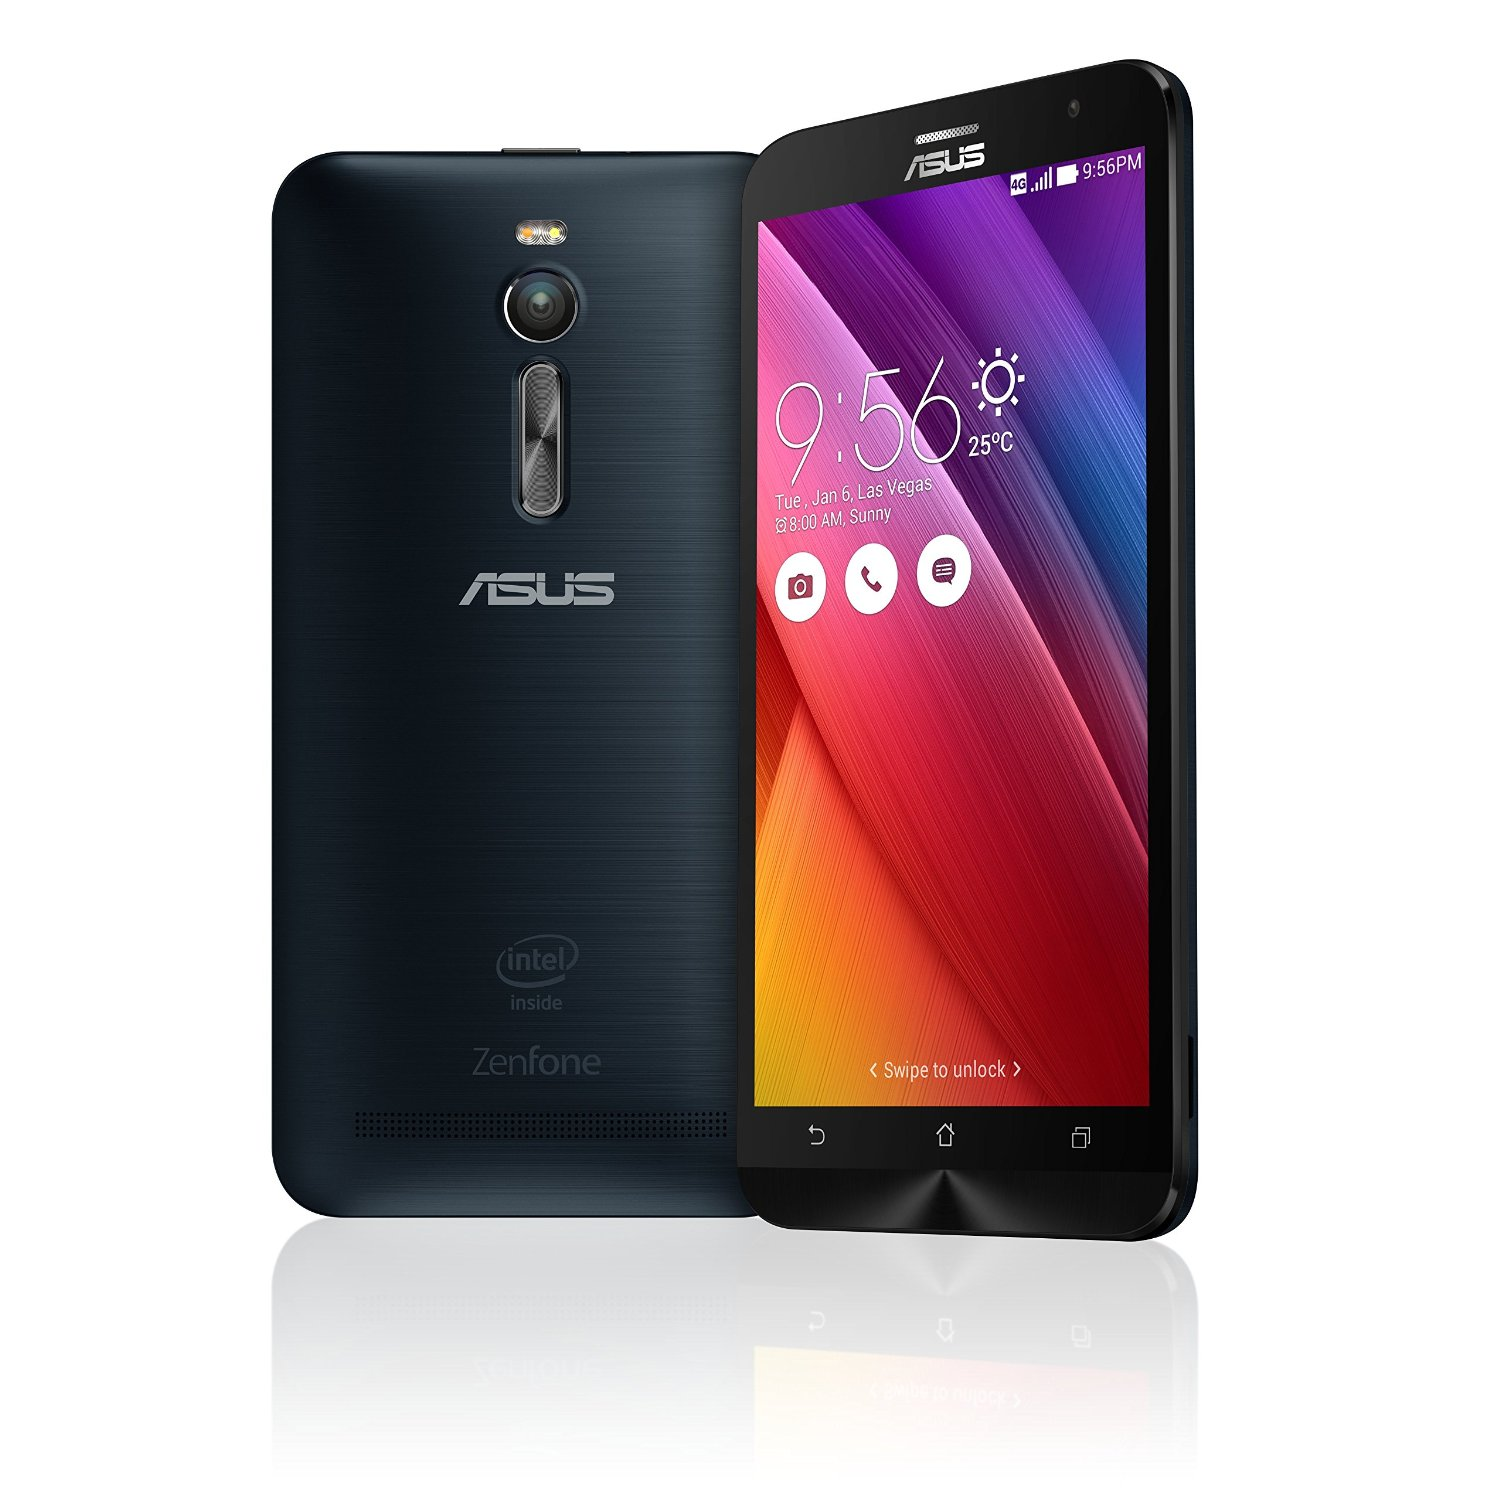 Asus ZenFone 2 (ZE550ML) - Full Phone Specifications